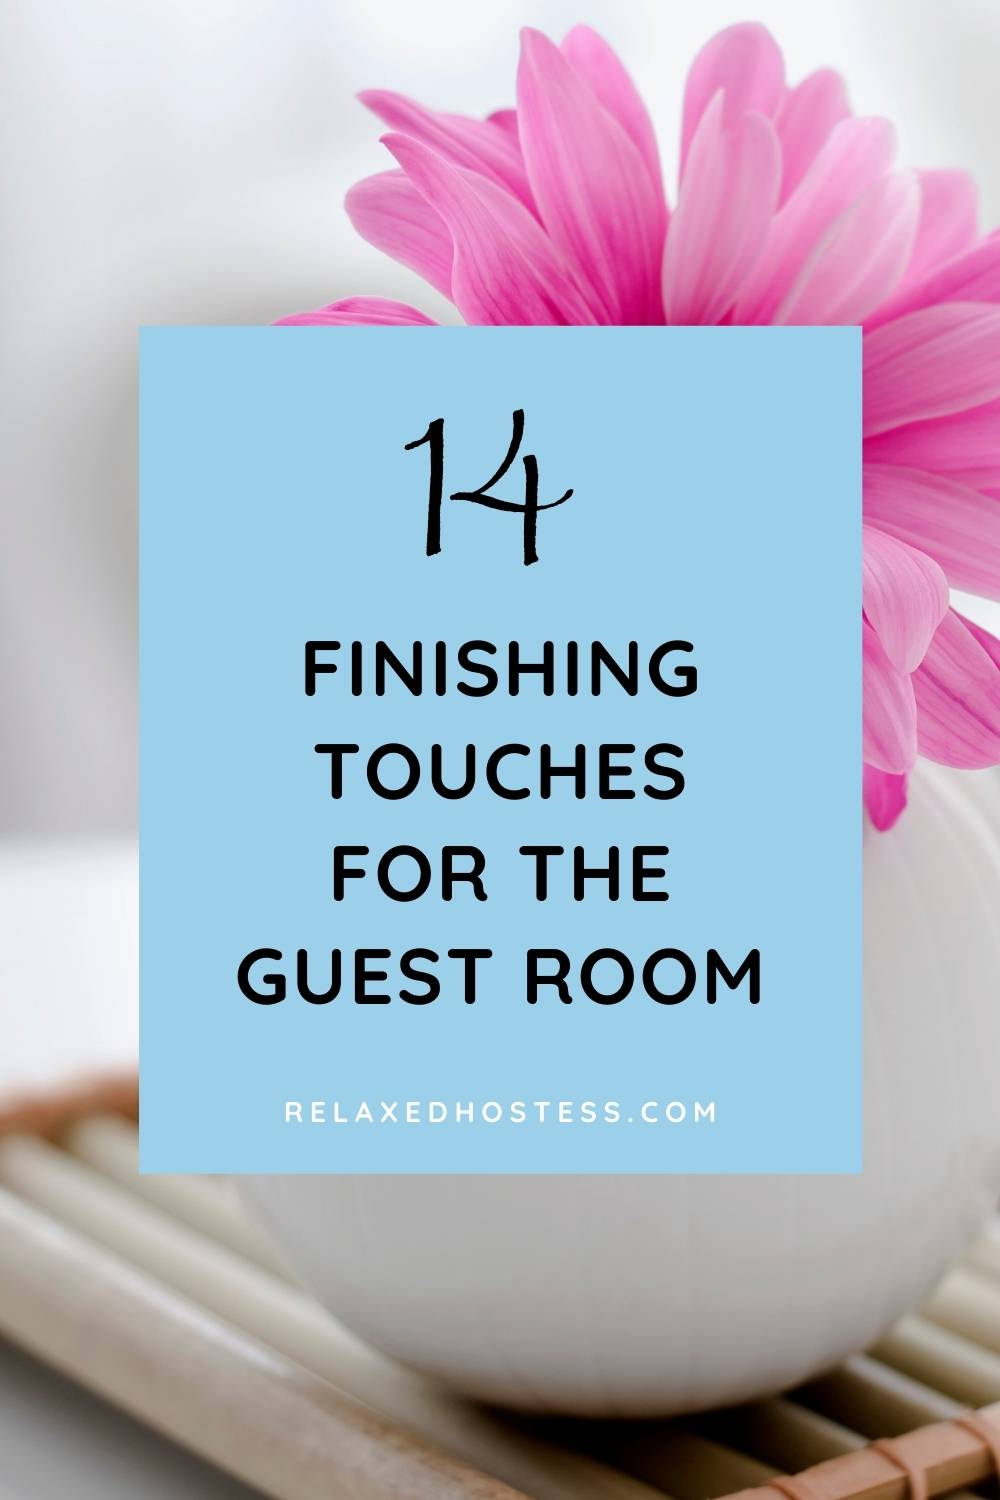 14 finishing touches for the guest room. RelaxedHostess.com. A pink flower in a white vase.